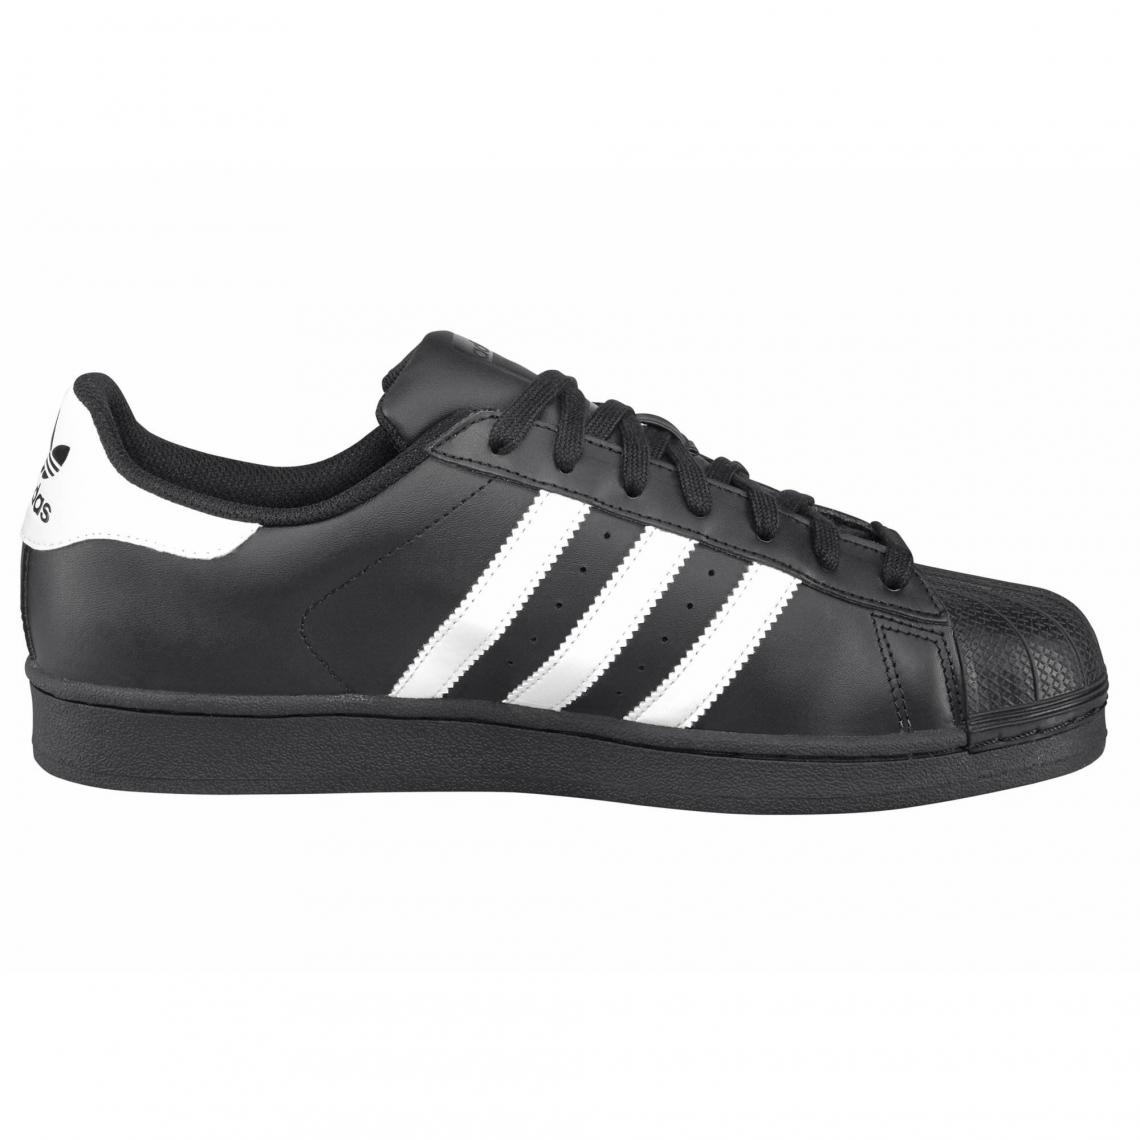 9224bdbb6de6 Tennis adidas Originals Superstar East River pour homme - Noir